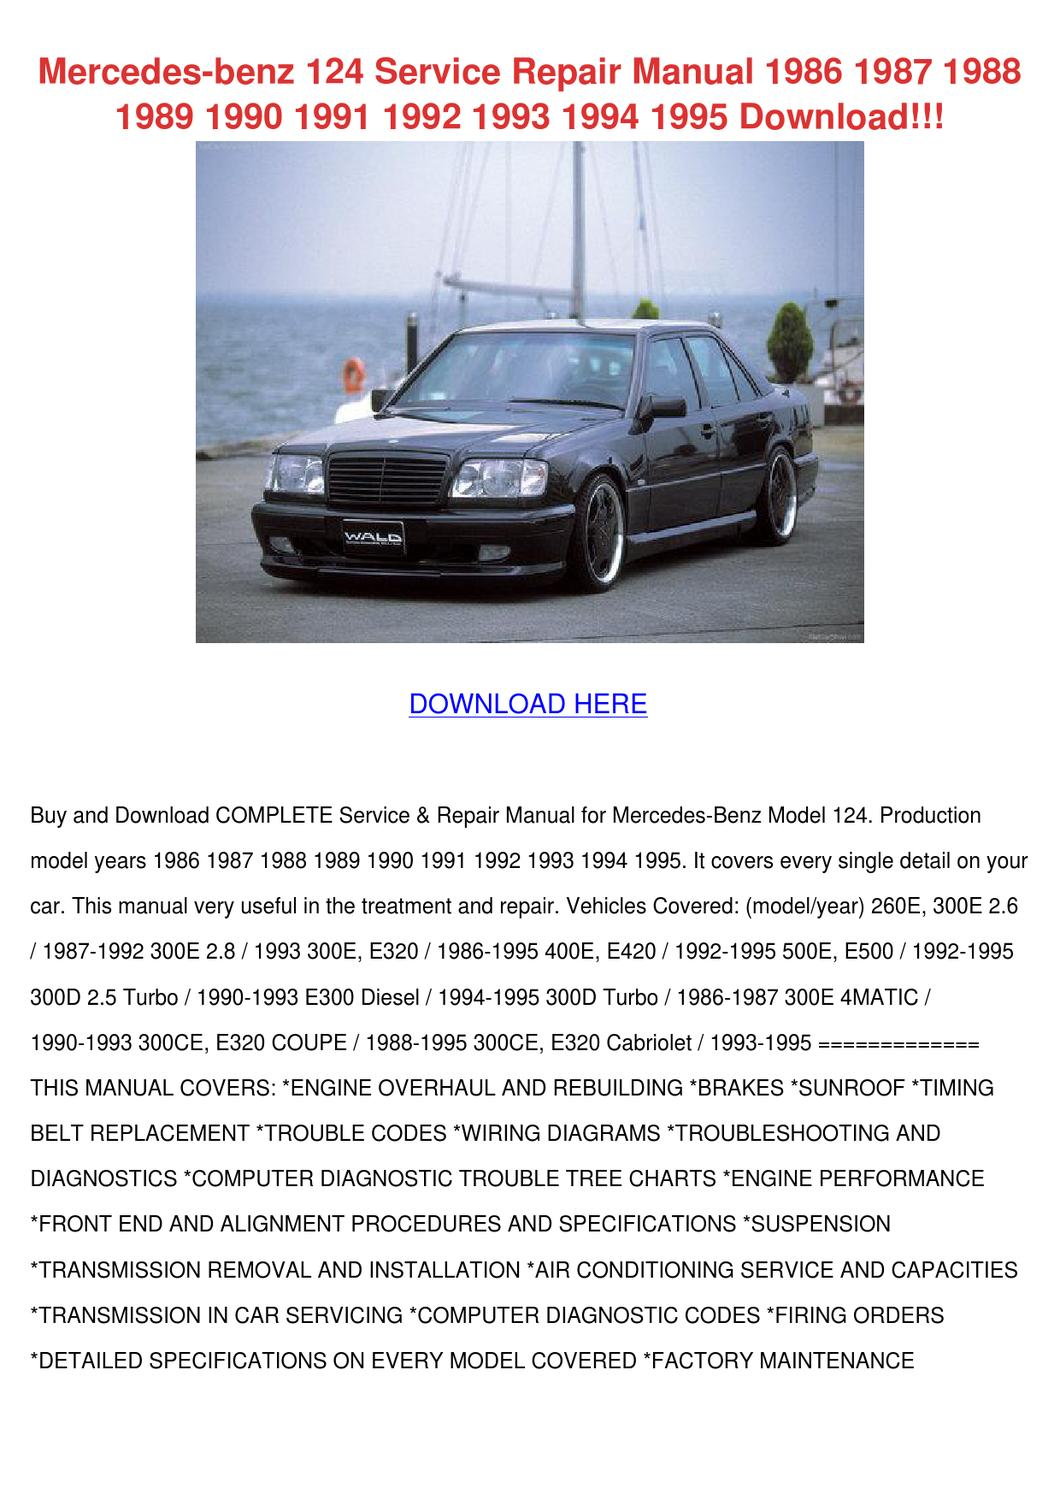 mercedes e500 wiring diagram jsf architecture benz 124 service repair manual 1986 by